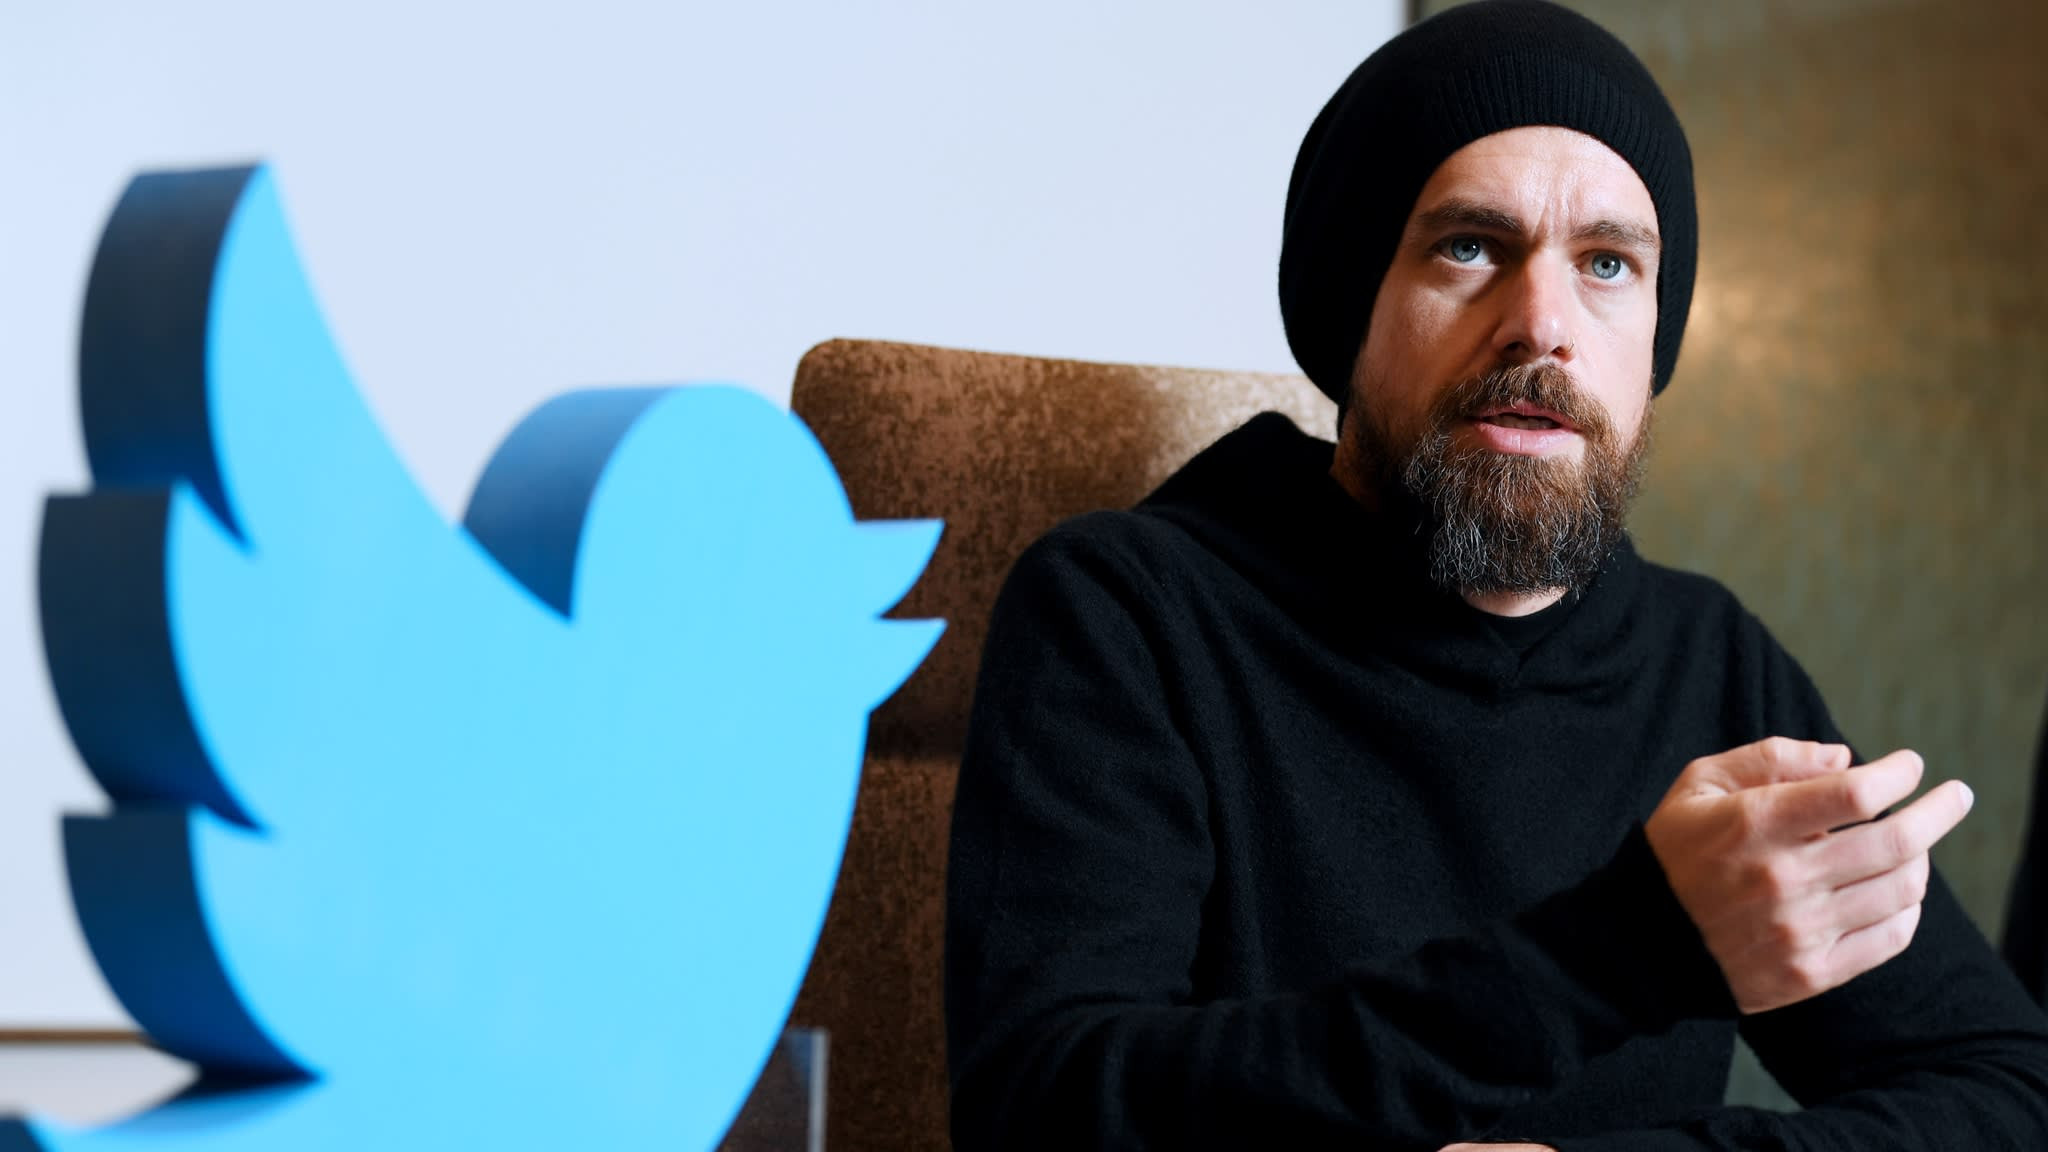 Twitter is considering subscription options after drop in Ad revenue